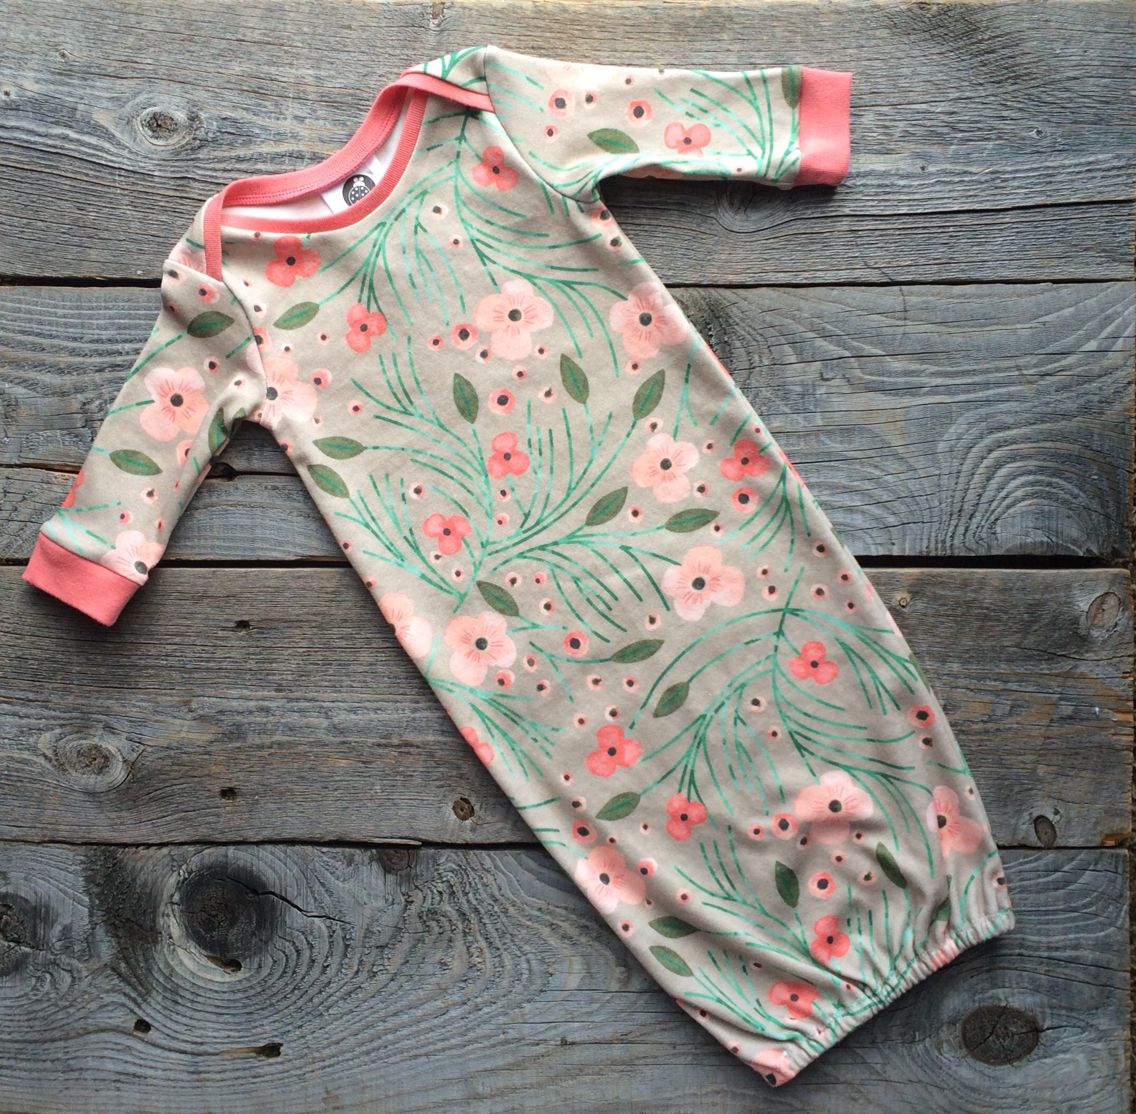 Winter Flower Organic Gown - Available at Natural Baby Company in Bozeman, MT